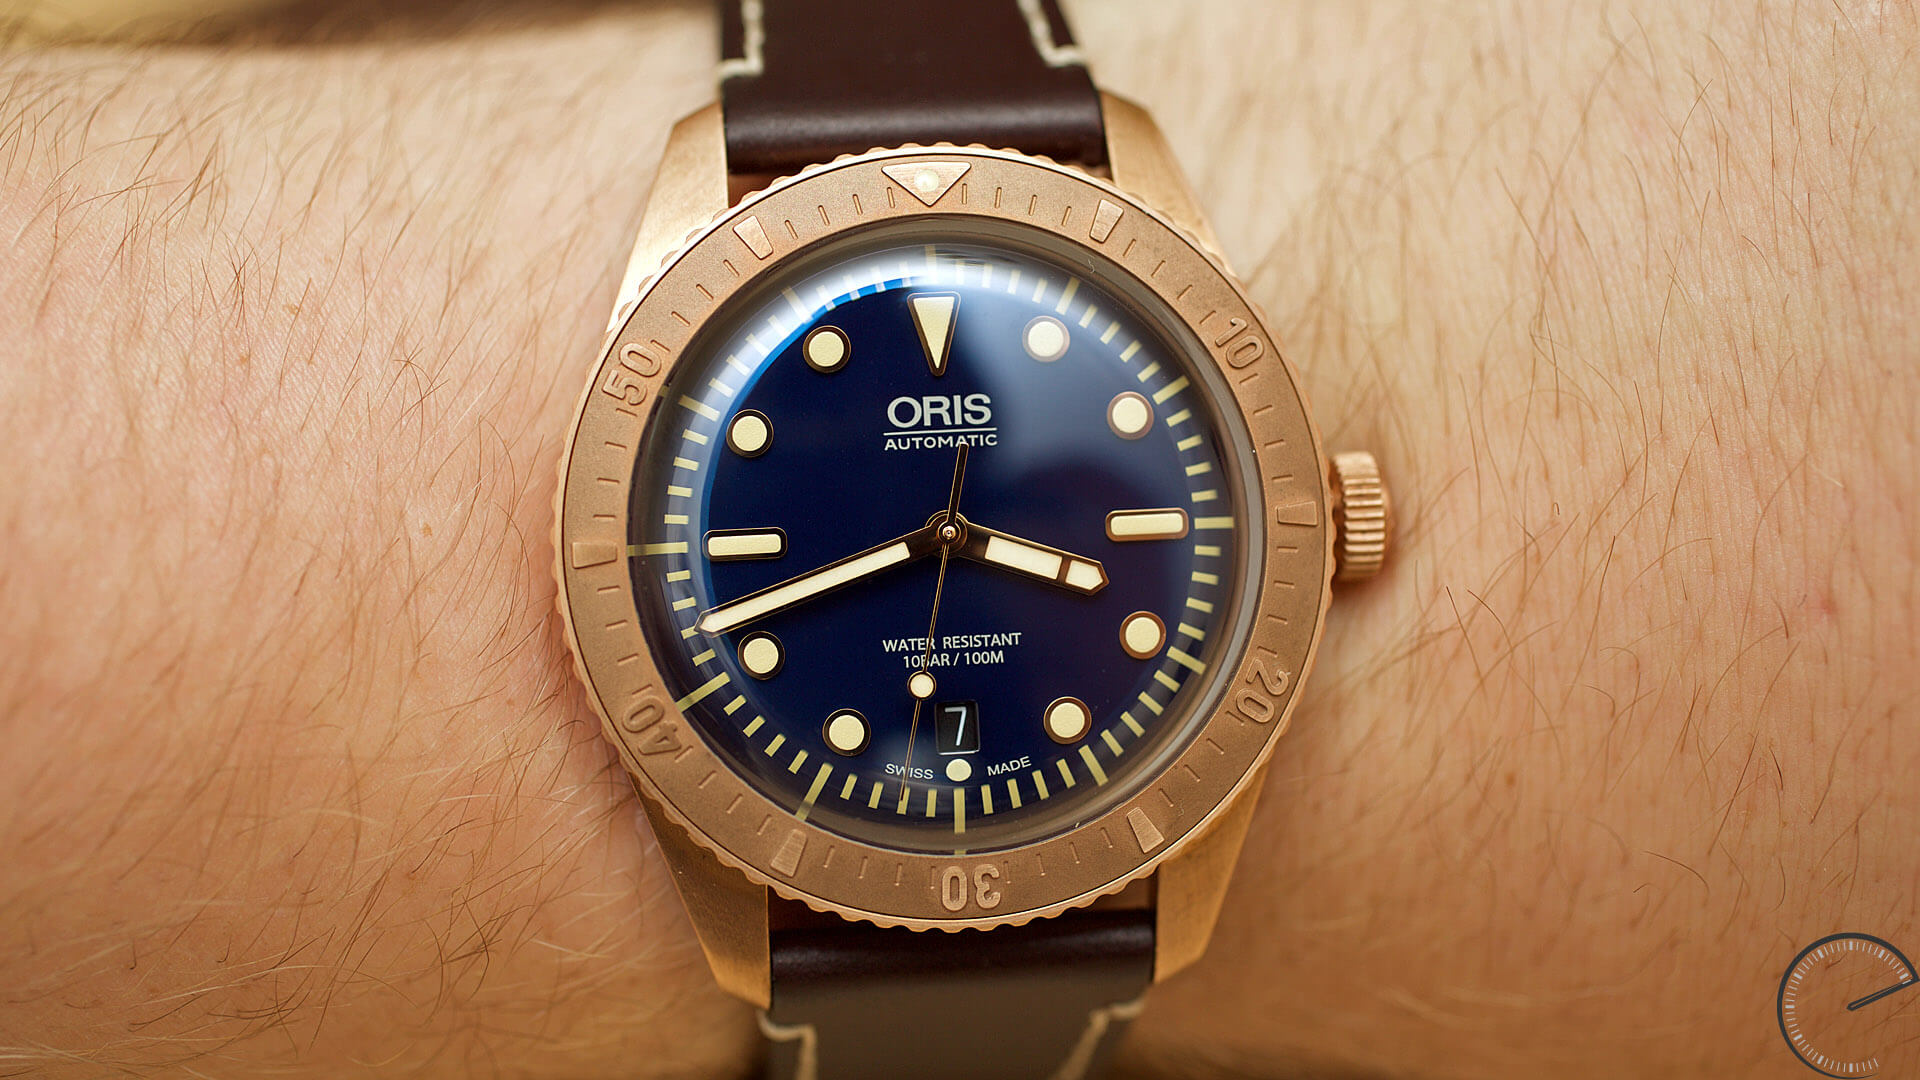 Oris_Carl_Brashear_Limited_Edition_wrist - ESCAPEMENT Magazine - watch review website by Angus Davies